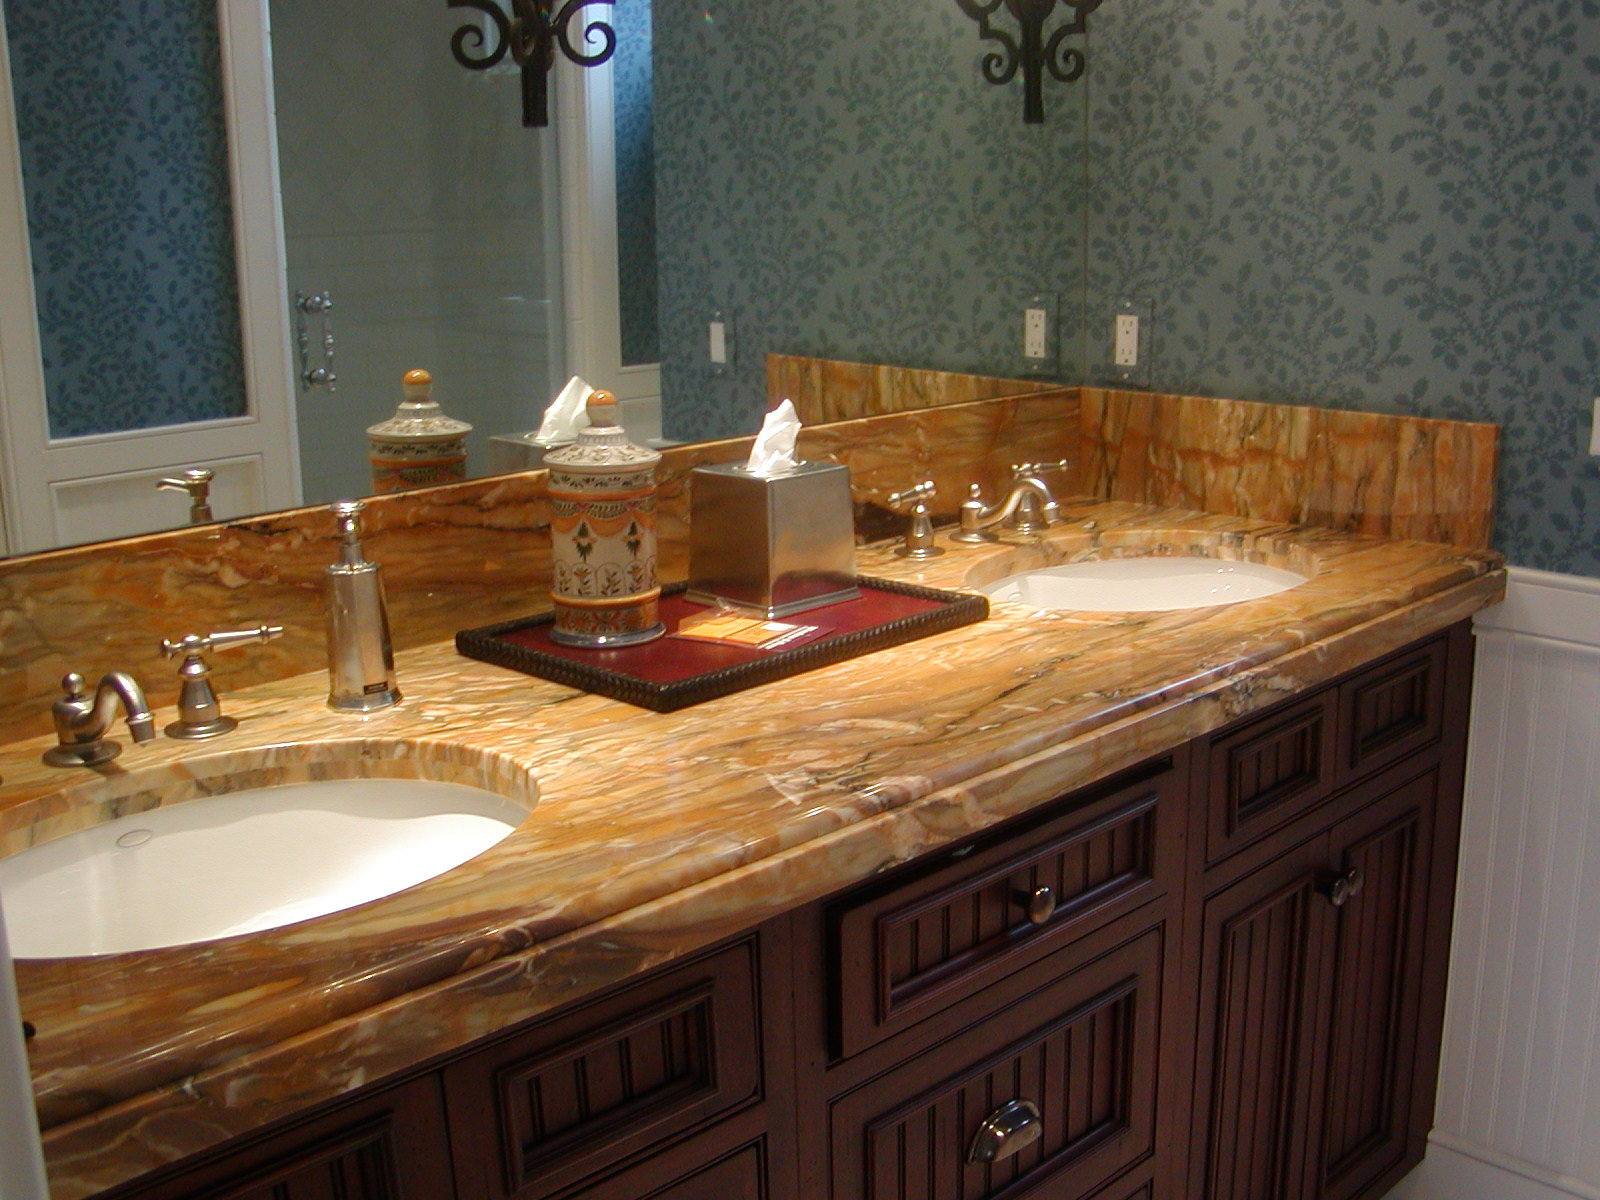 Room Vanity Countertops : Selecting a sink for your countertop adp surfaces orlando